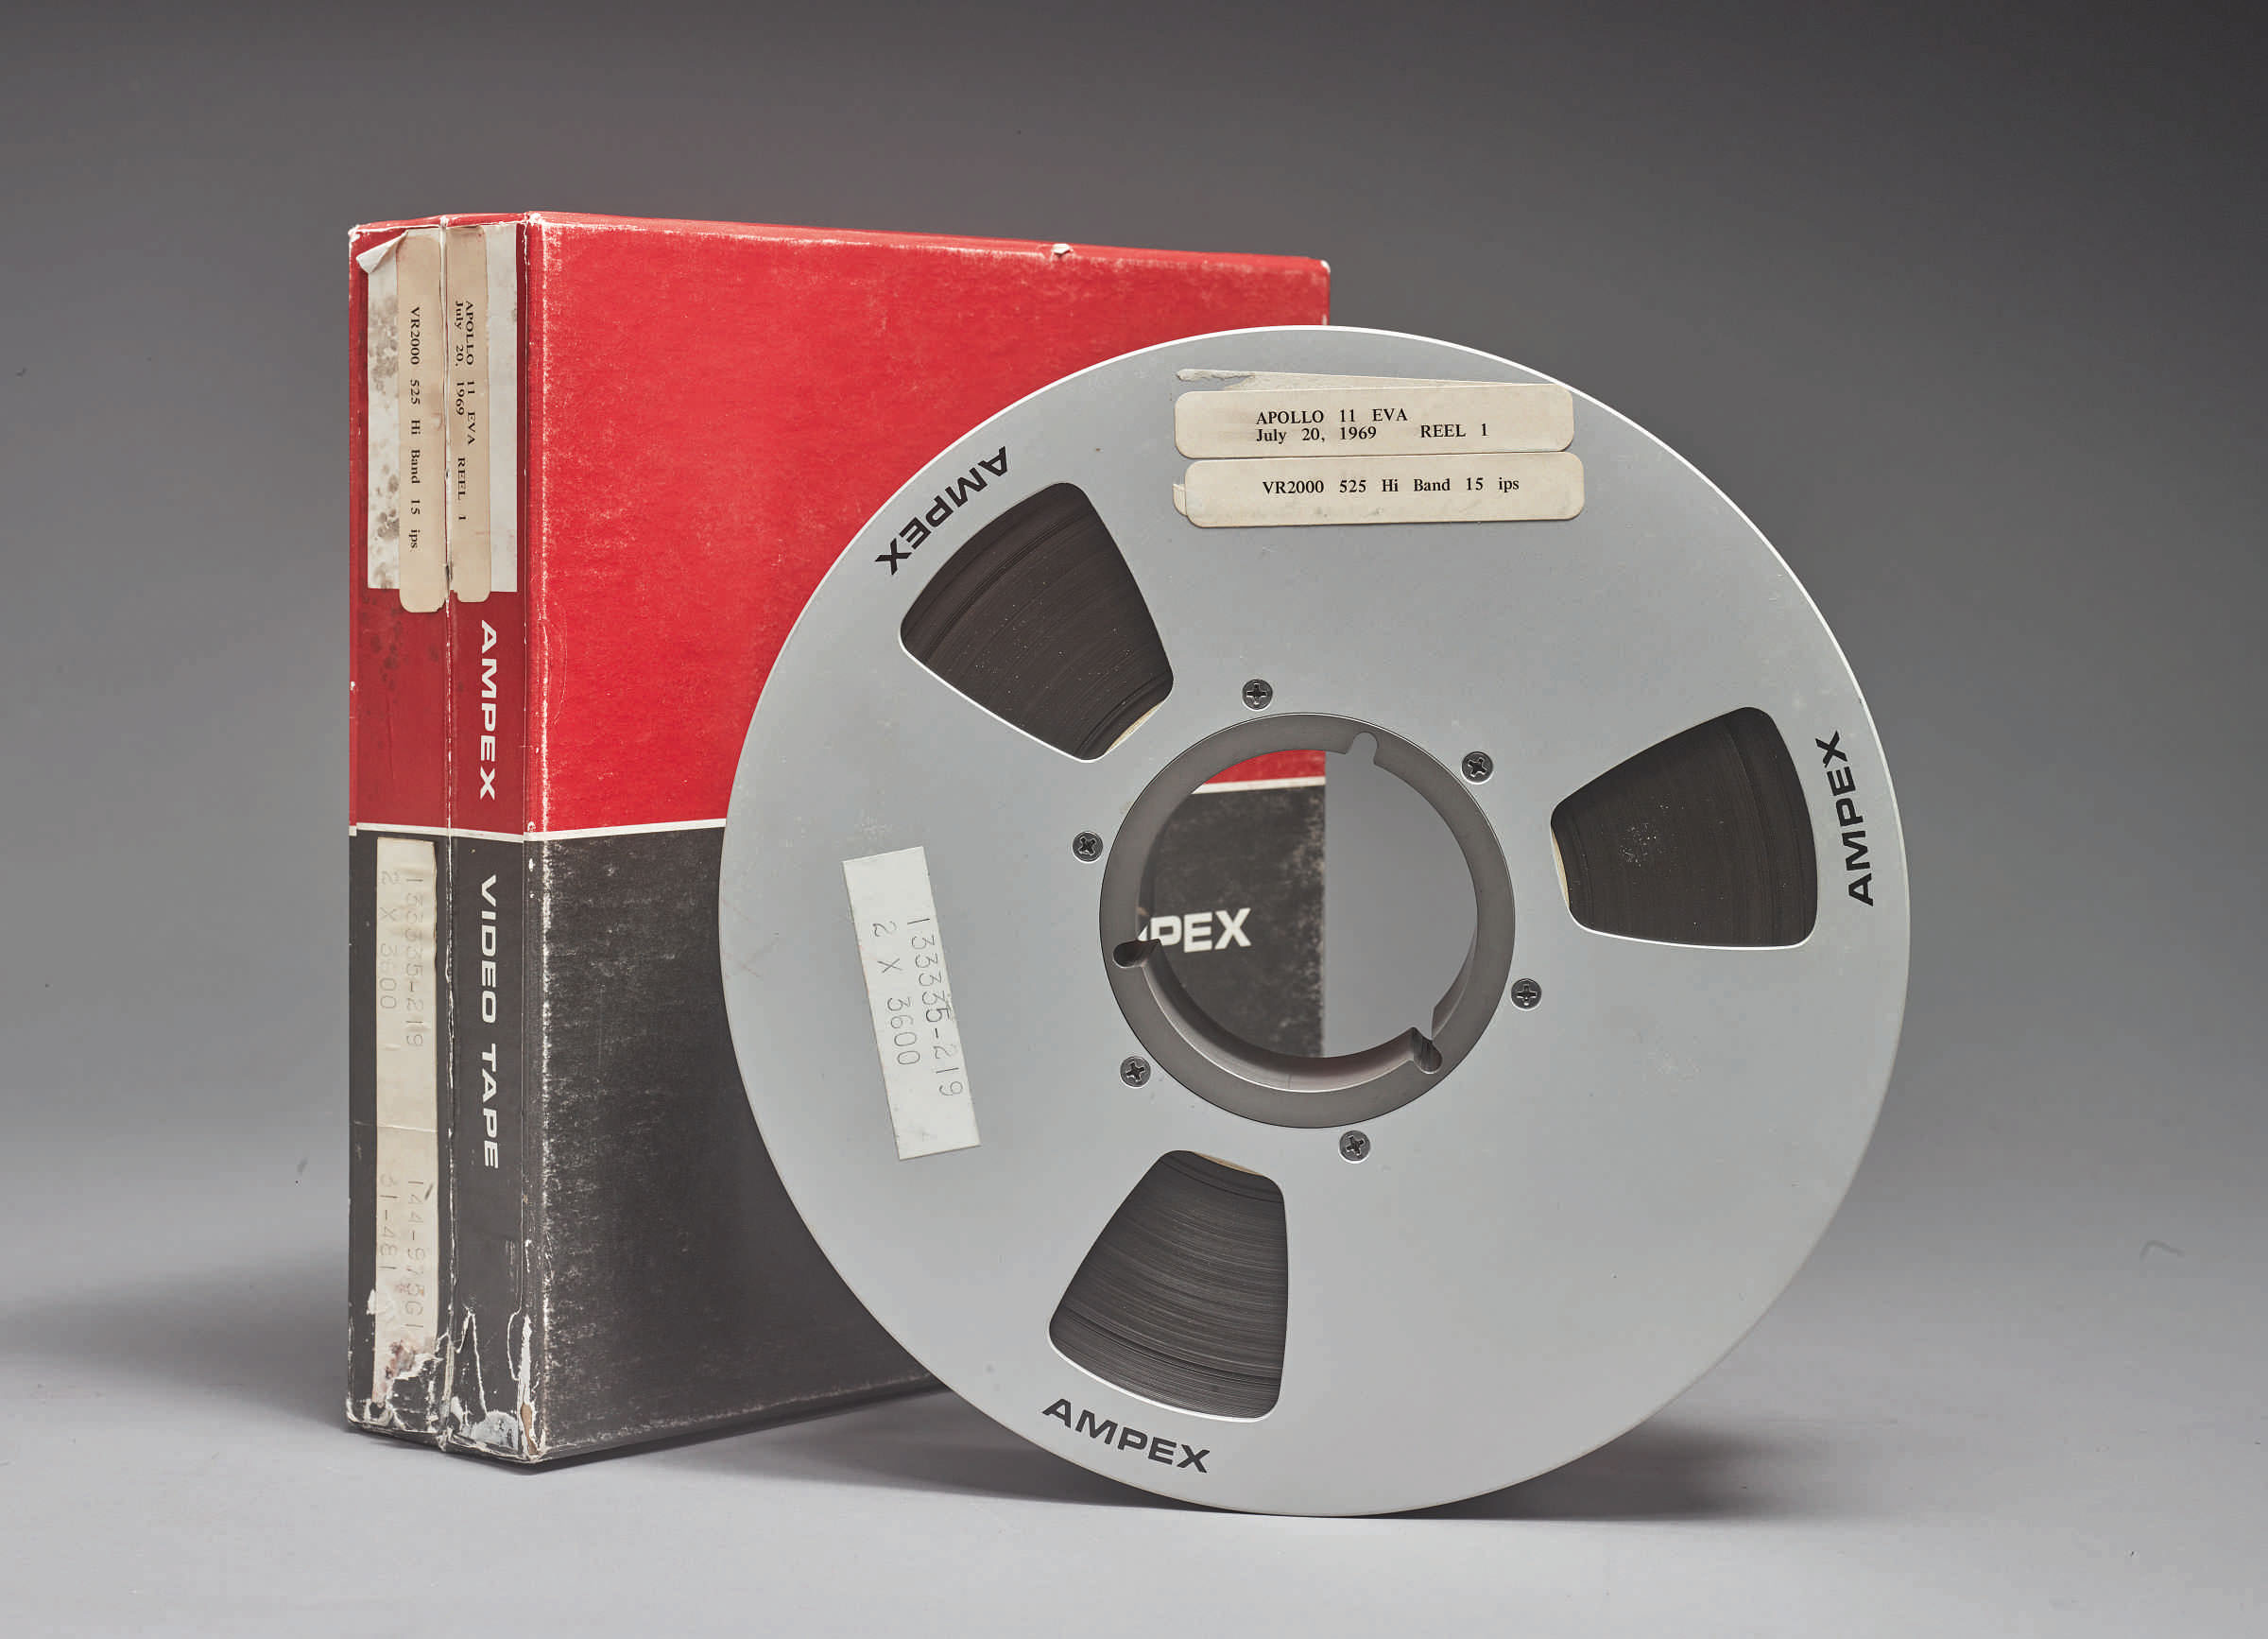 One of the three AMPEX tapes of the Apollo 11 moonwalk, shown with its red and black storage case.